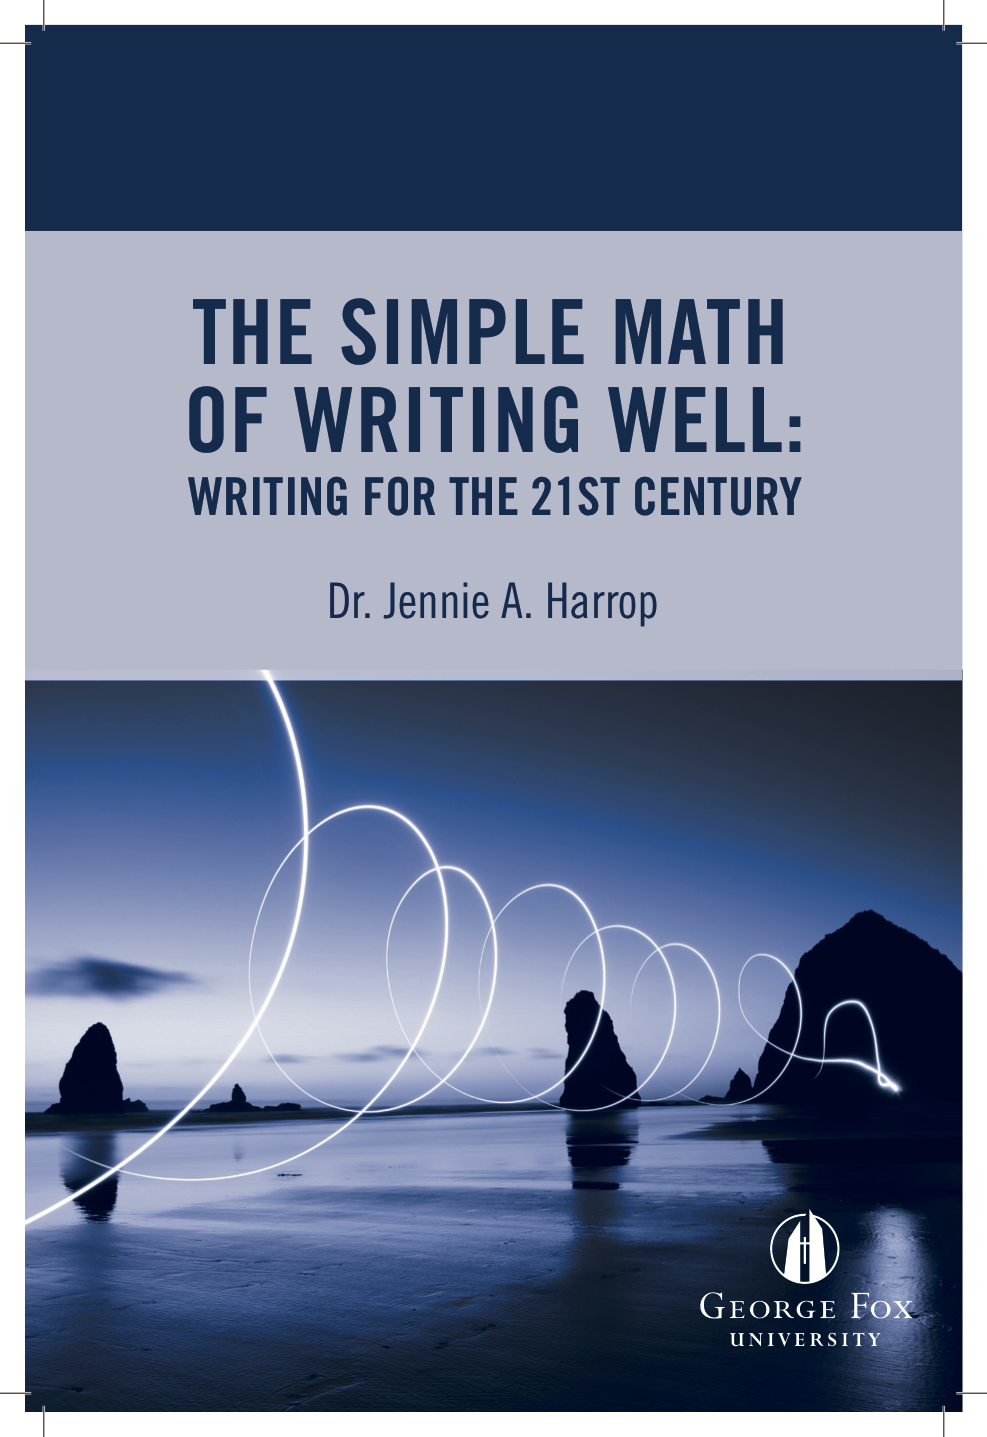 Cover image for The Simple Math of Writing Well